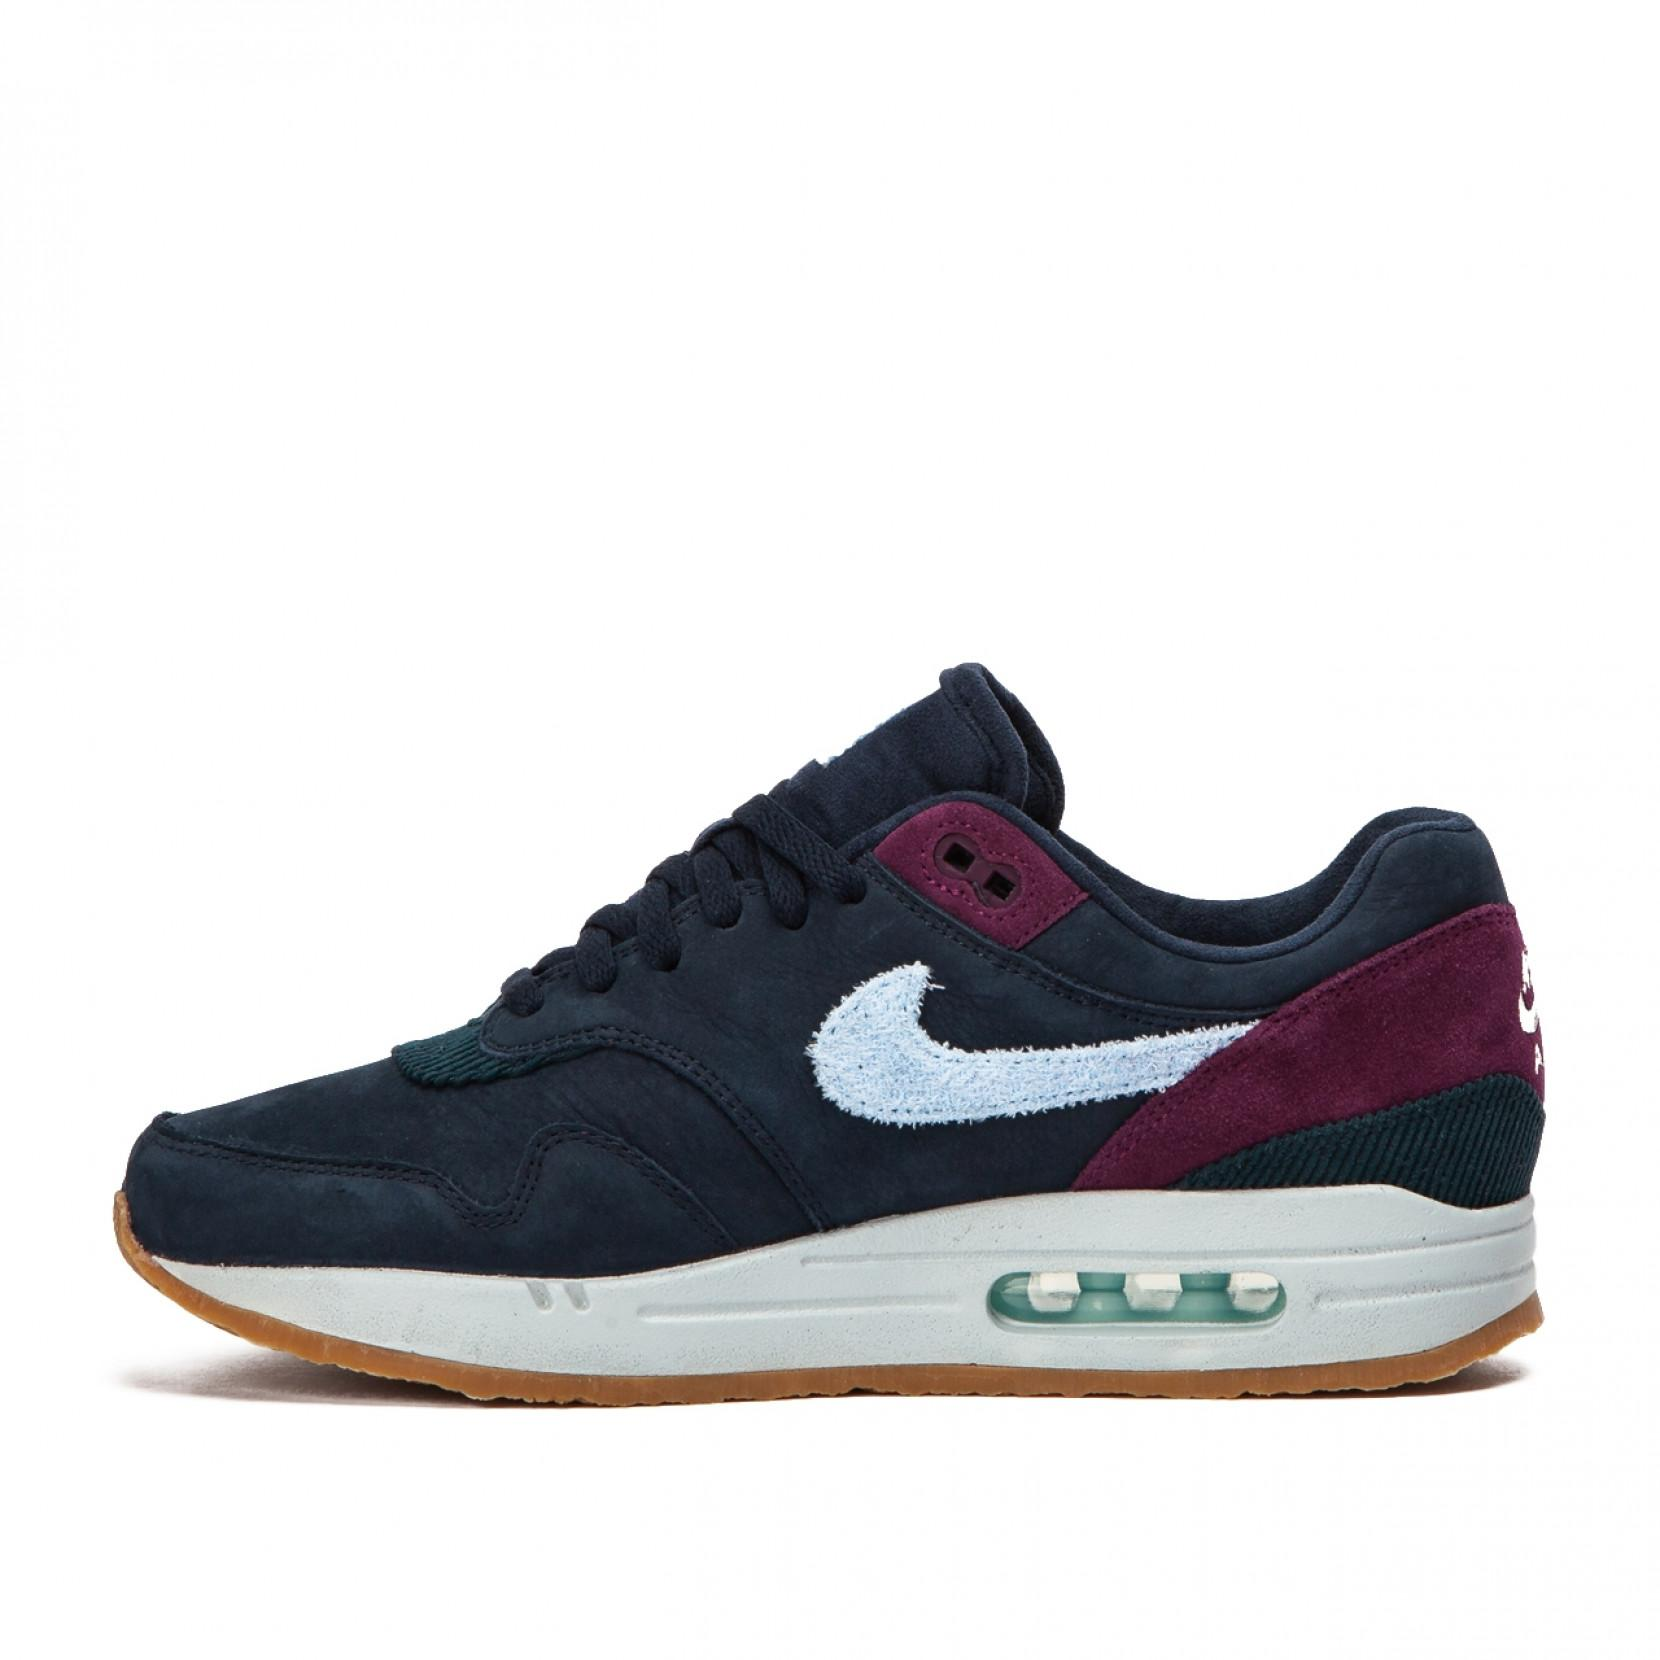 another chance best supplier where can i buy Nike Air Max 1 Crepe Sole